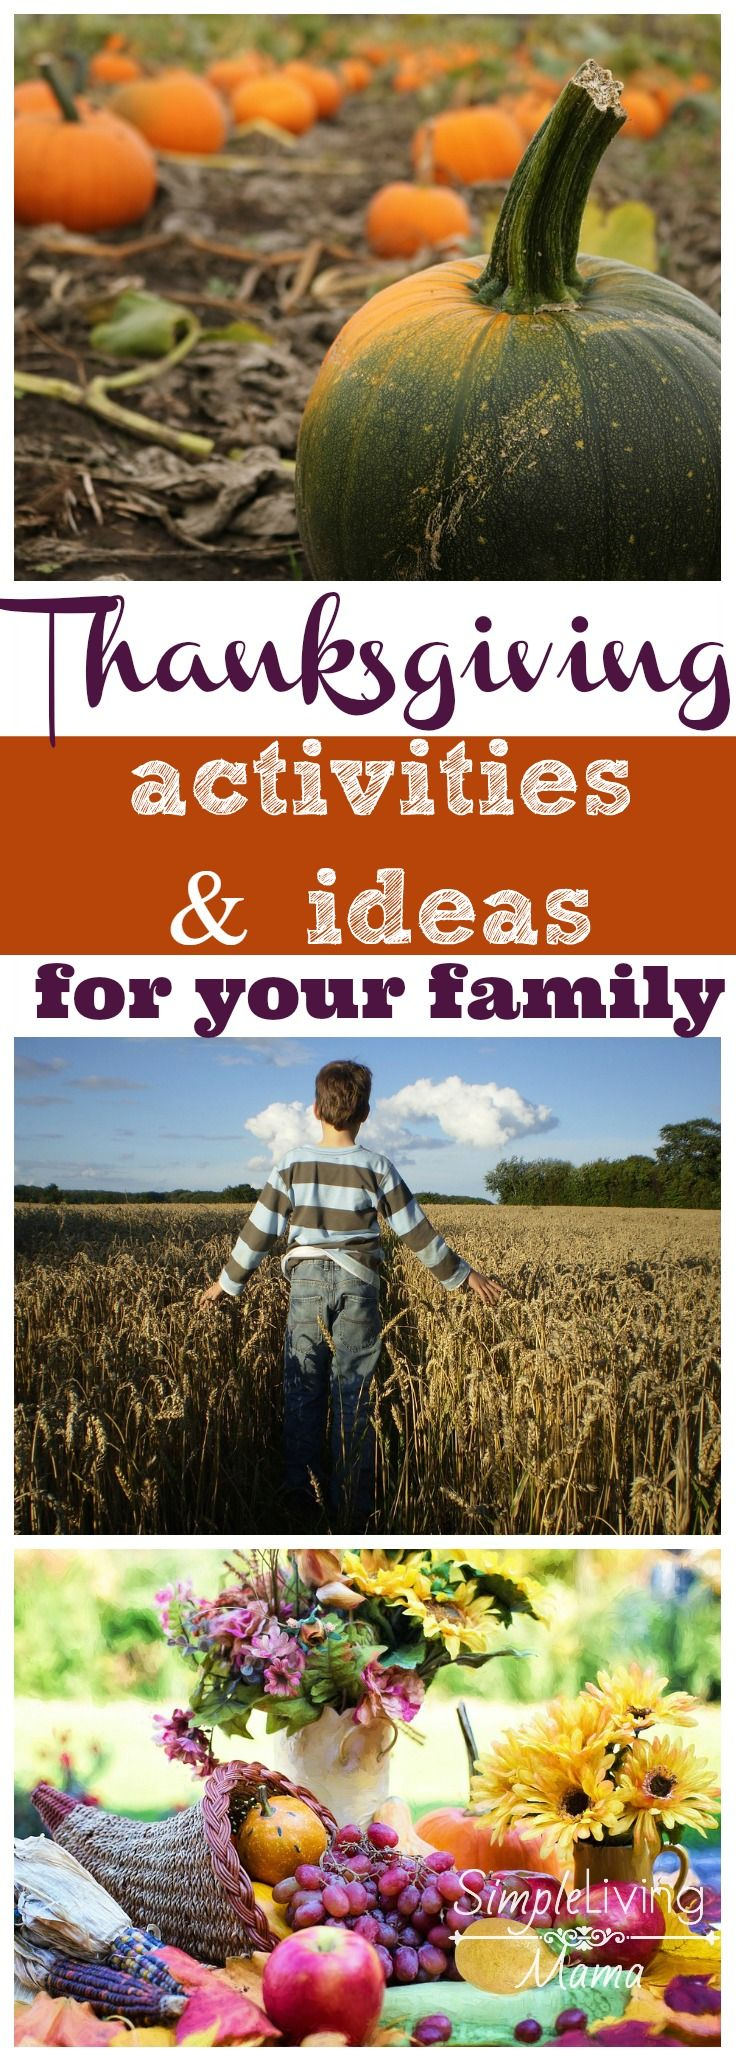 Thanksgiving activities and ideas activities about Fun family thanksgiving games